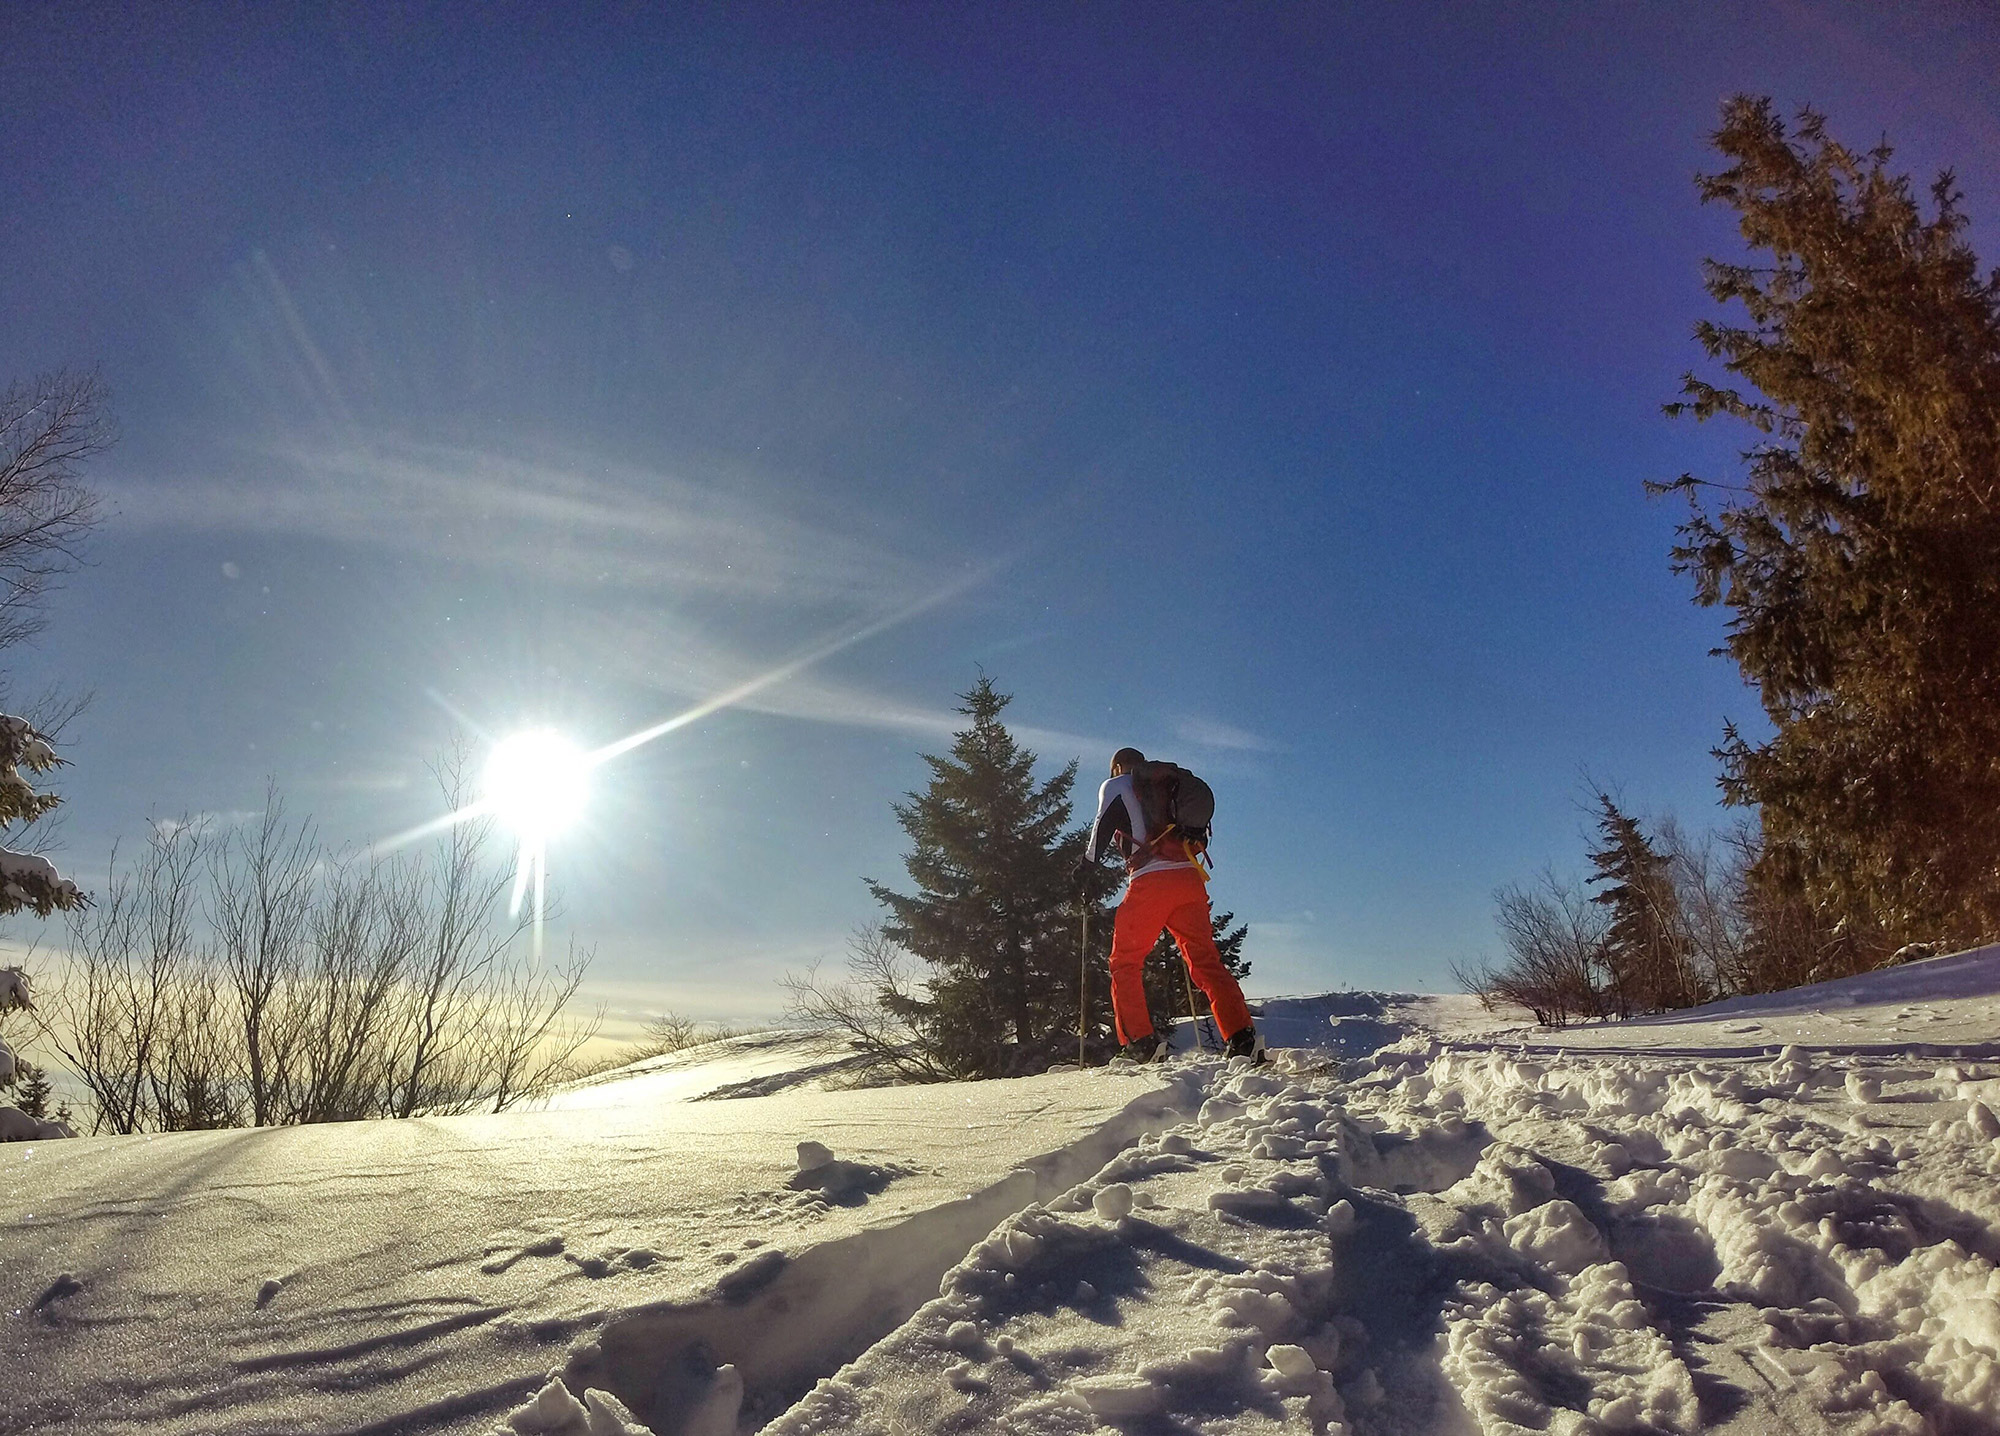 10 tips for backcountry skiing this spring - goeast